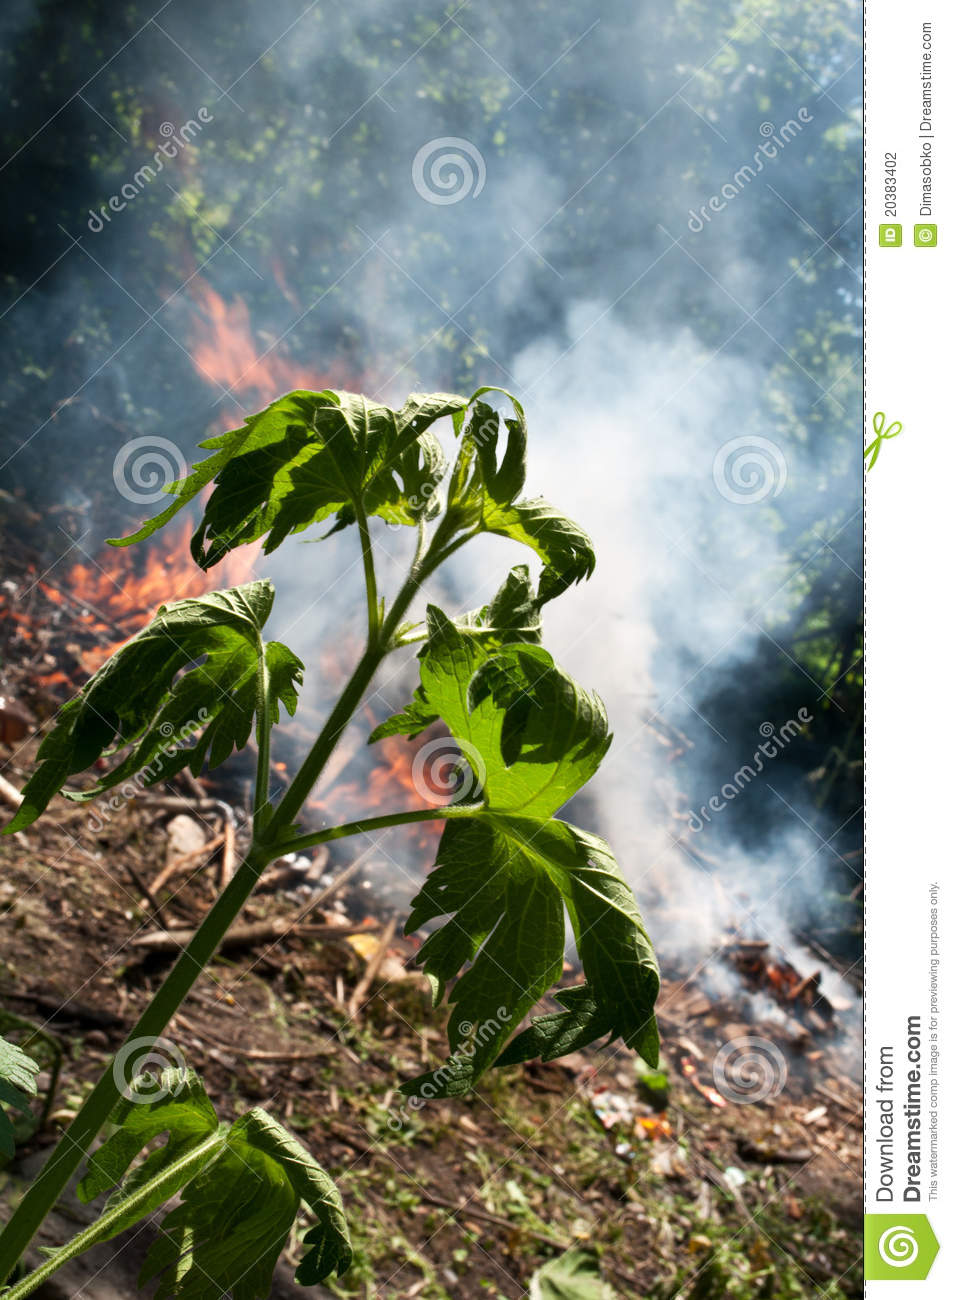 environment in danger Application for a damage or danger permit under the migratory birds regulations   home environment and natural resources wildlife, plants and  table below  the species of migratory birds causing the damage or danger,.